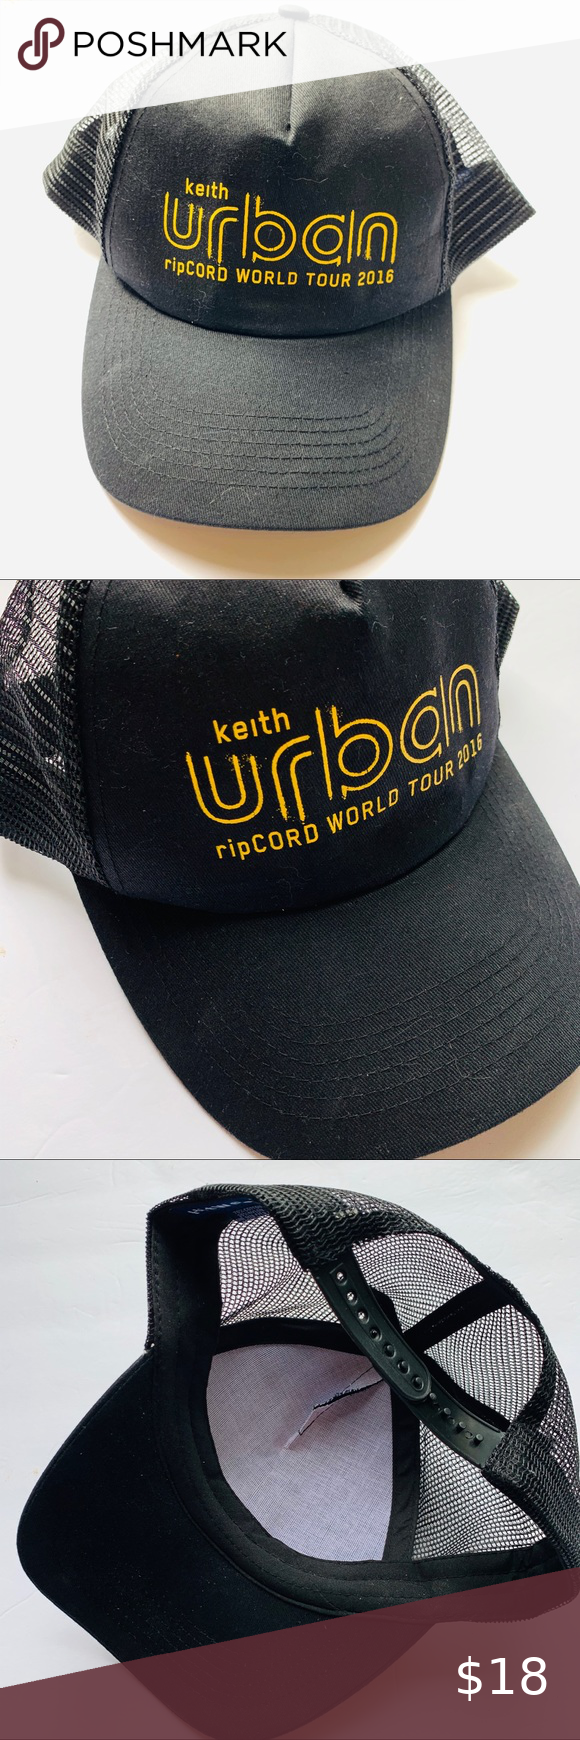 NEW Keith Urban Adjustable Trucker Hat in 2020 Keith